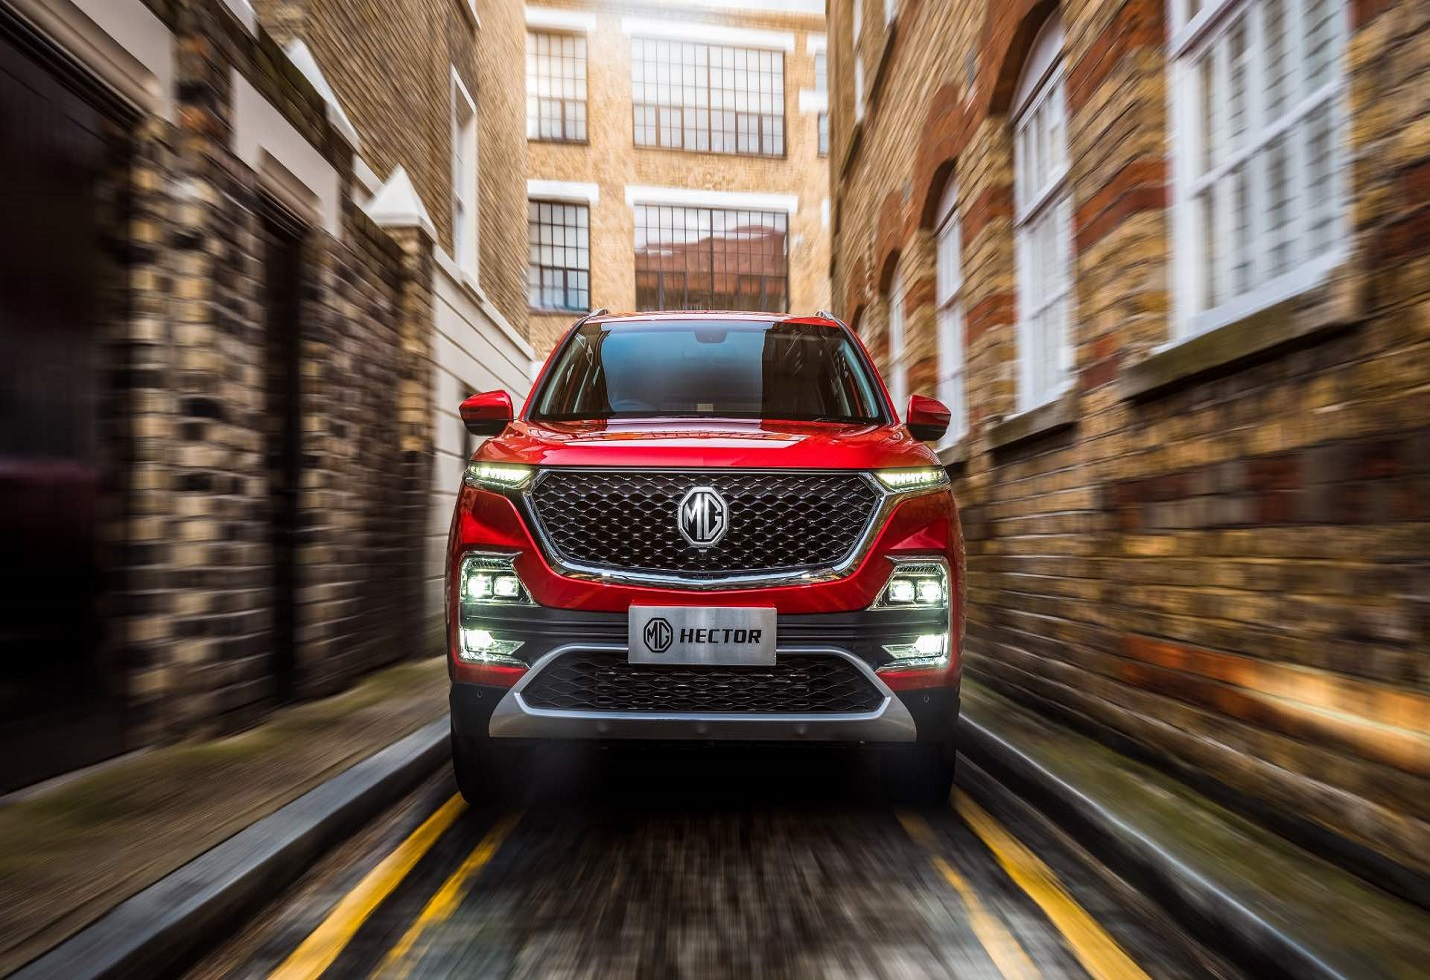 MG drives in Hector in the crowded SUV market